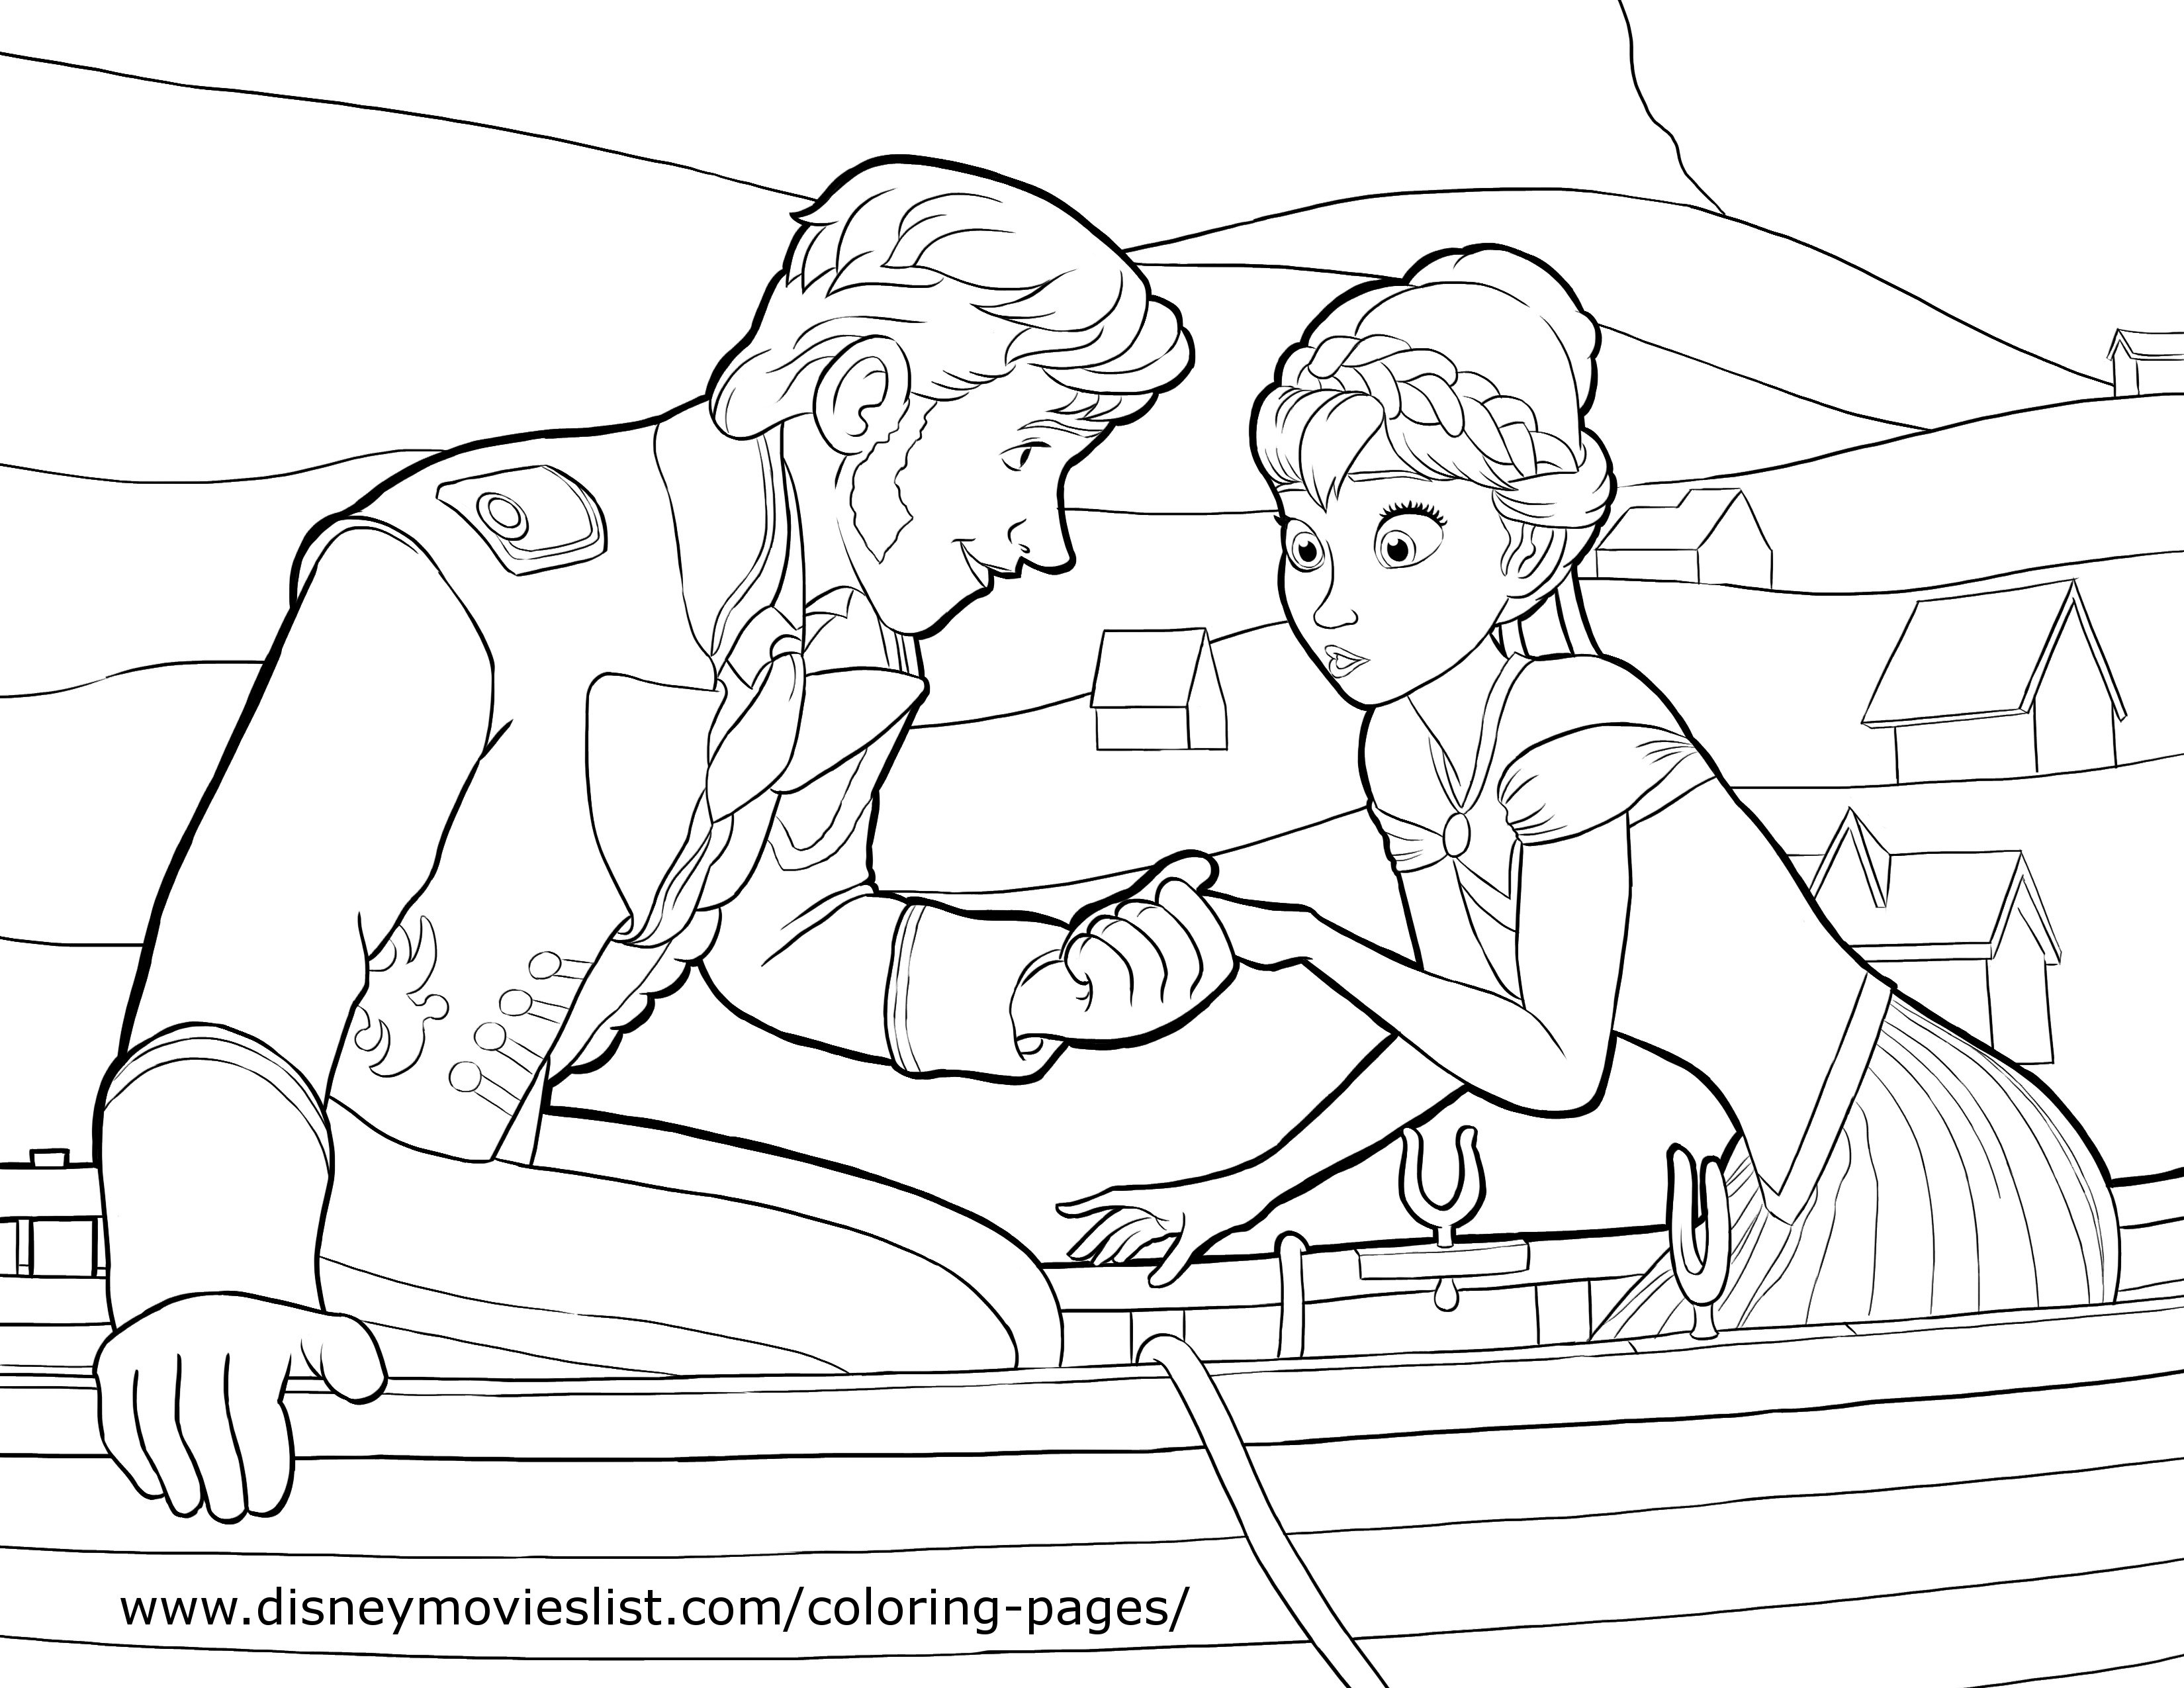 Frozen Drawing Paper at GetDrawings.com | Free for personal use ...